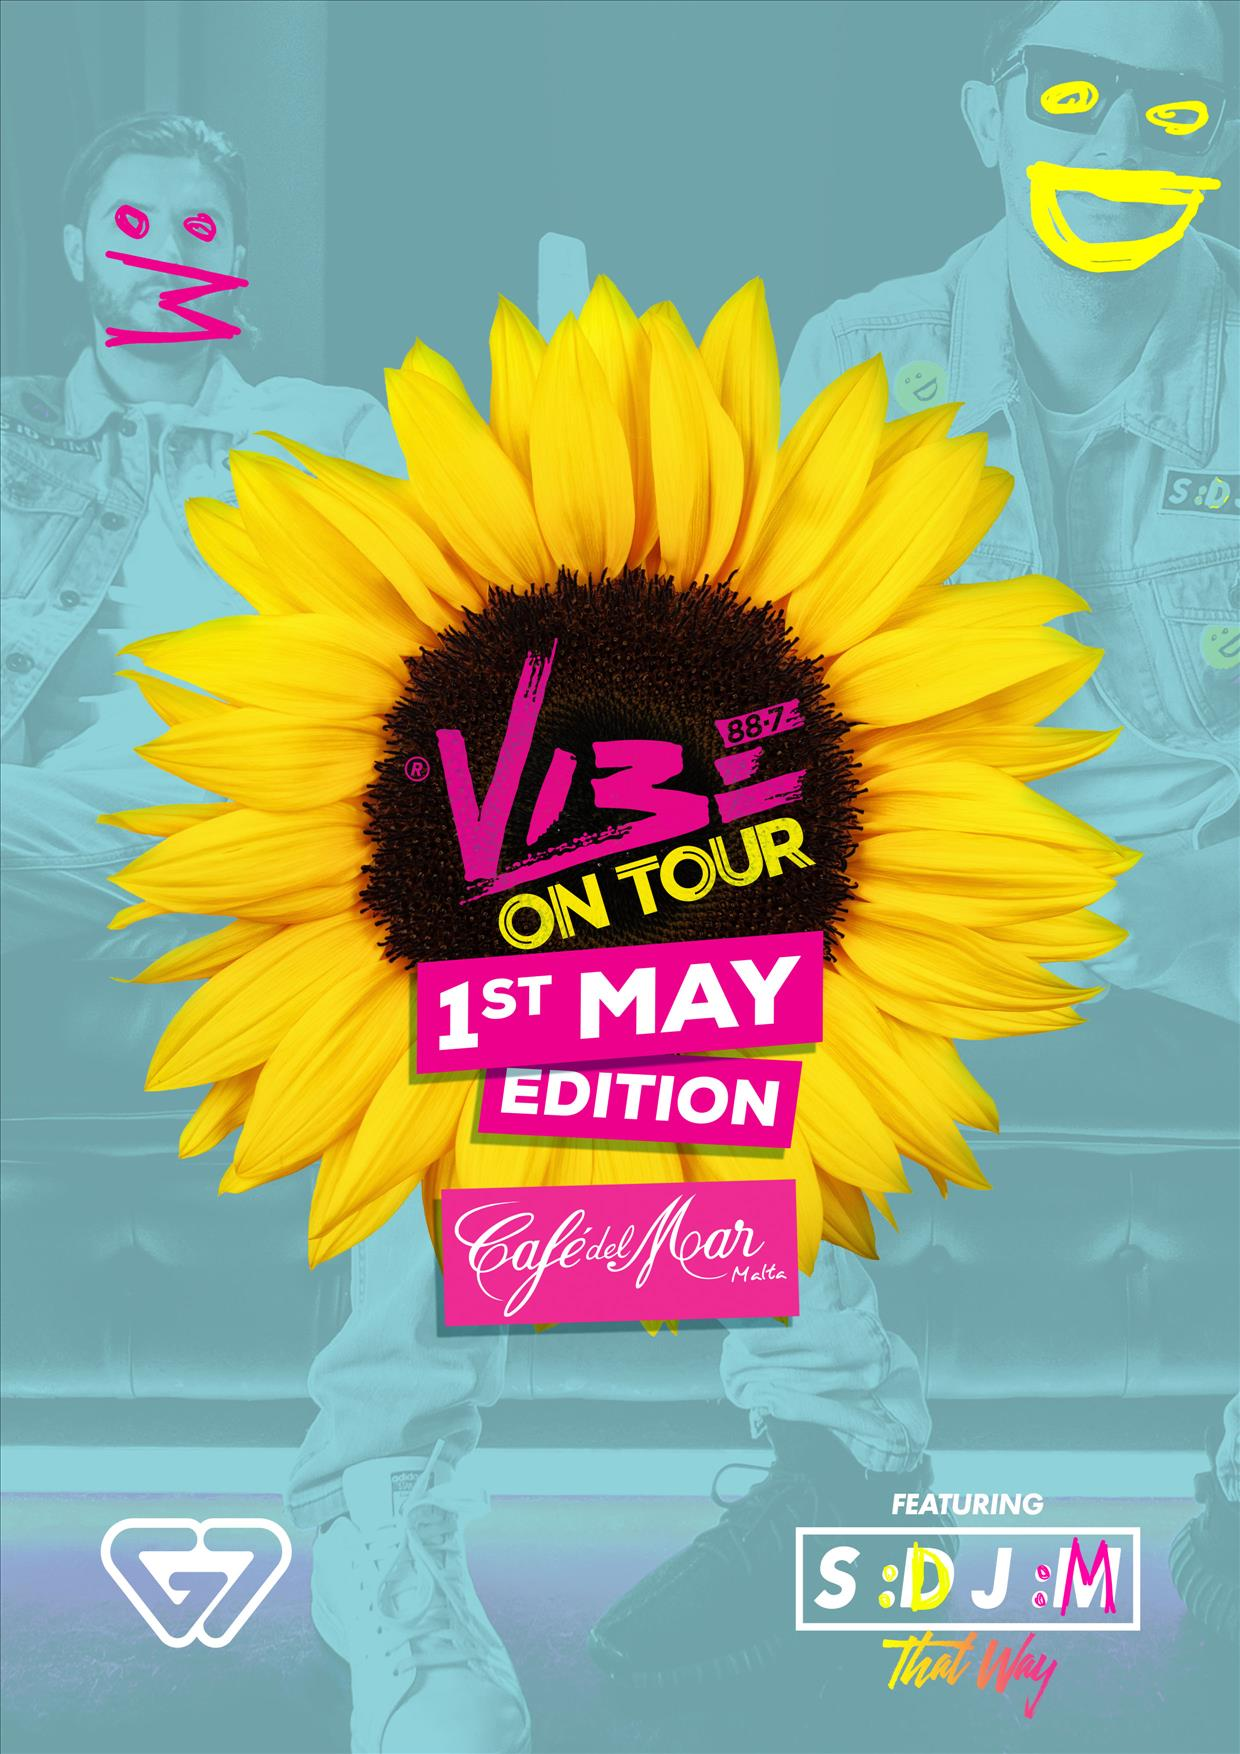 Vibe on Tour - 1st of May Edition ft. SDJM flyer